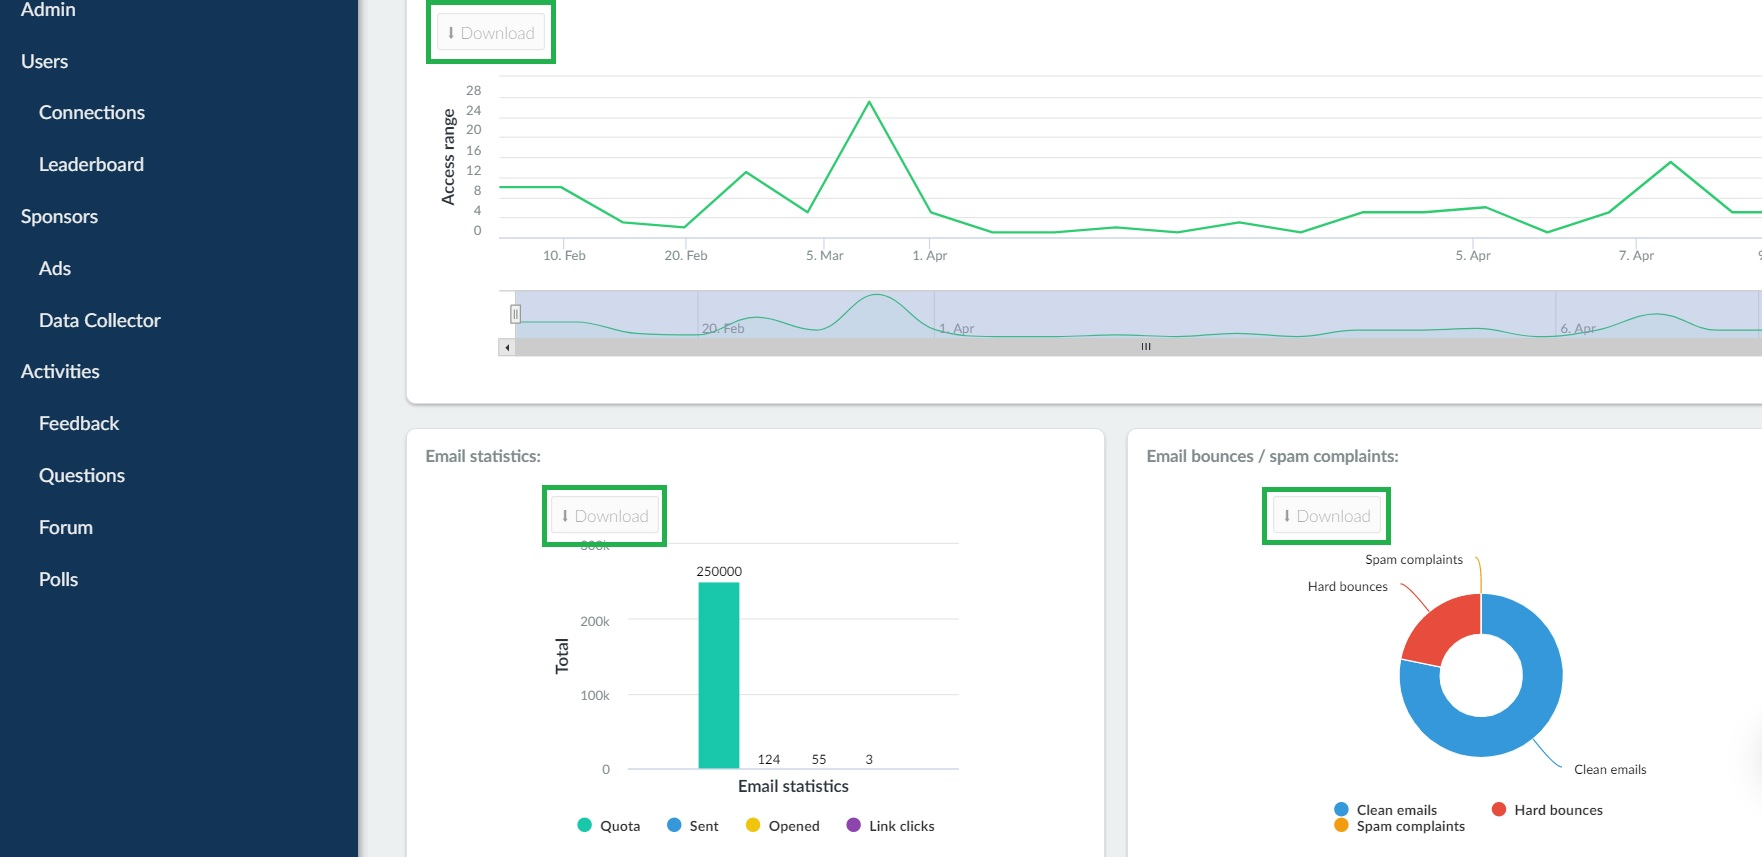 How to download charts from the Live dashboard